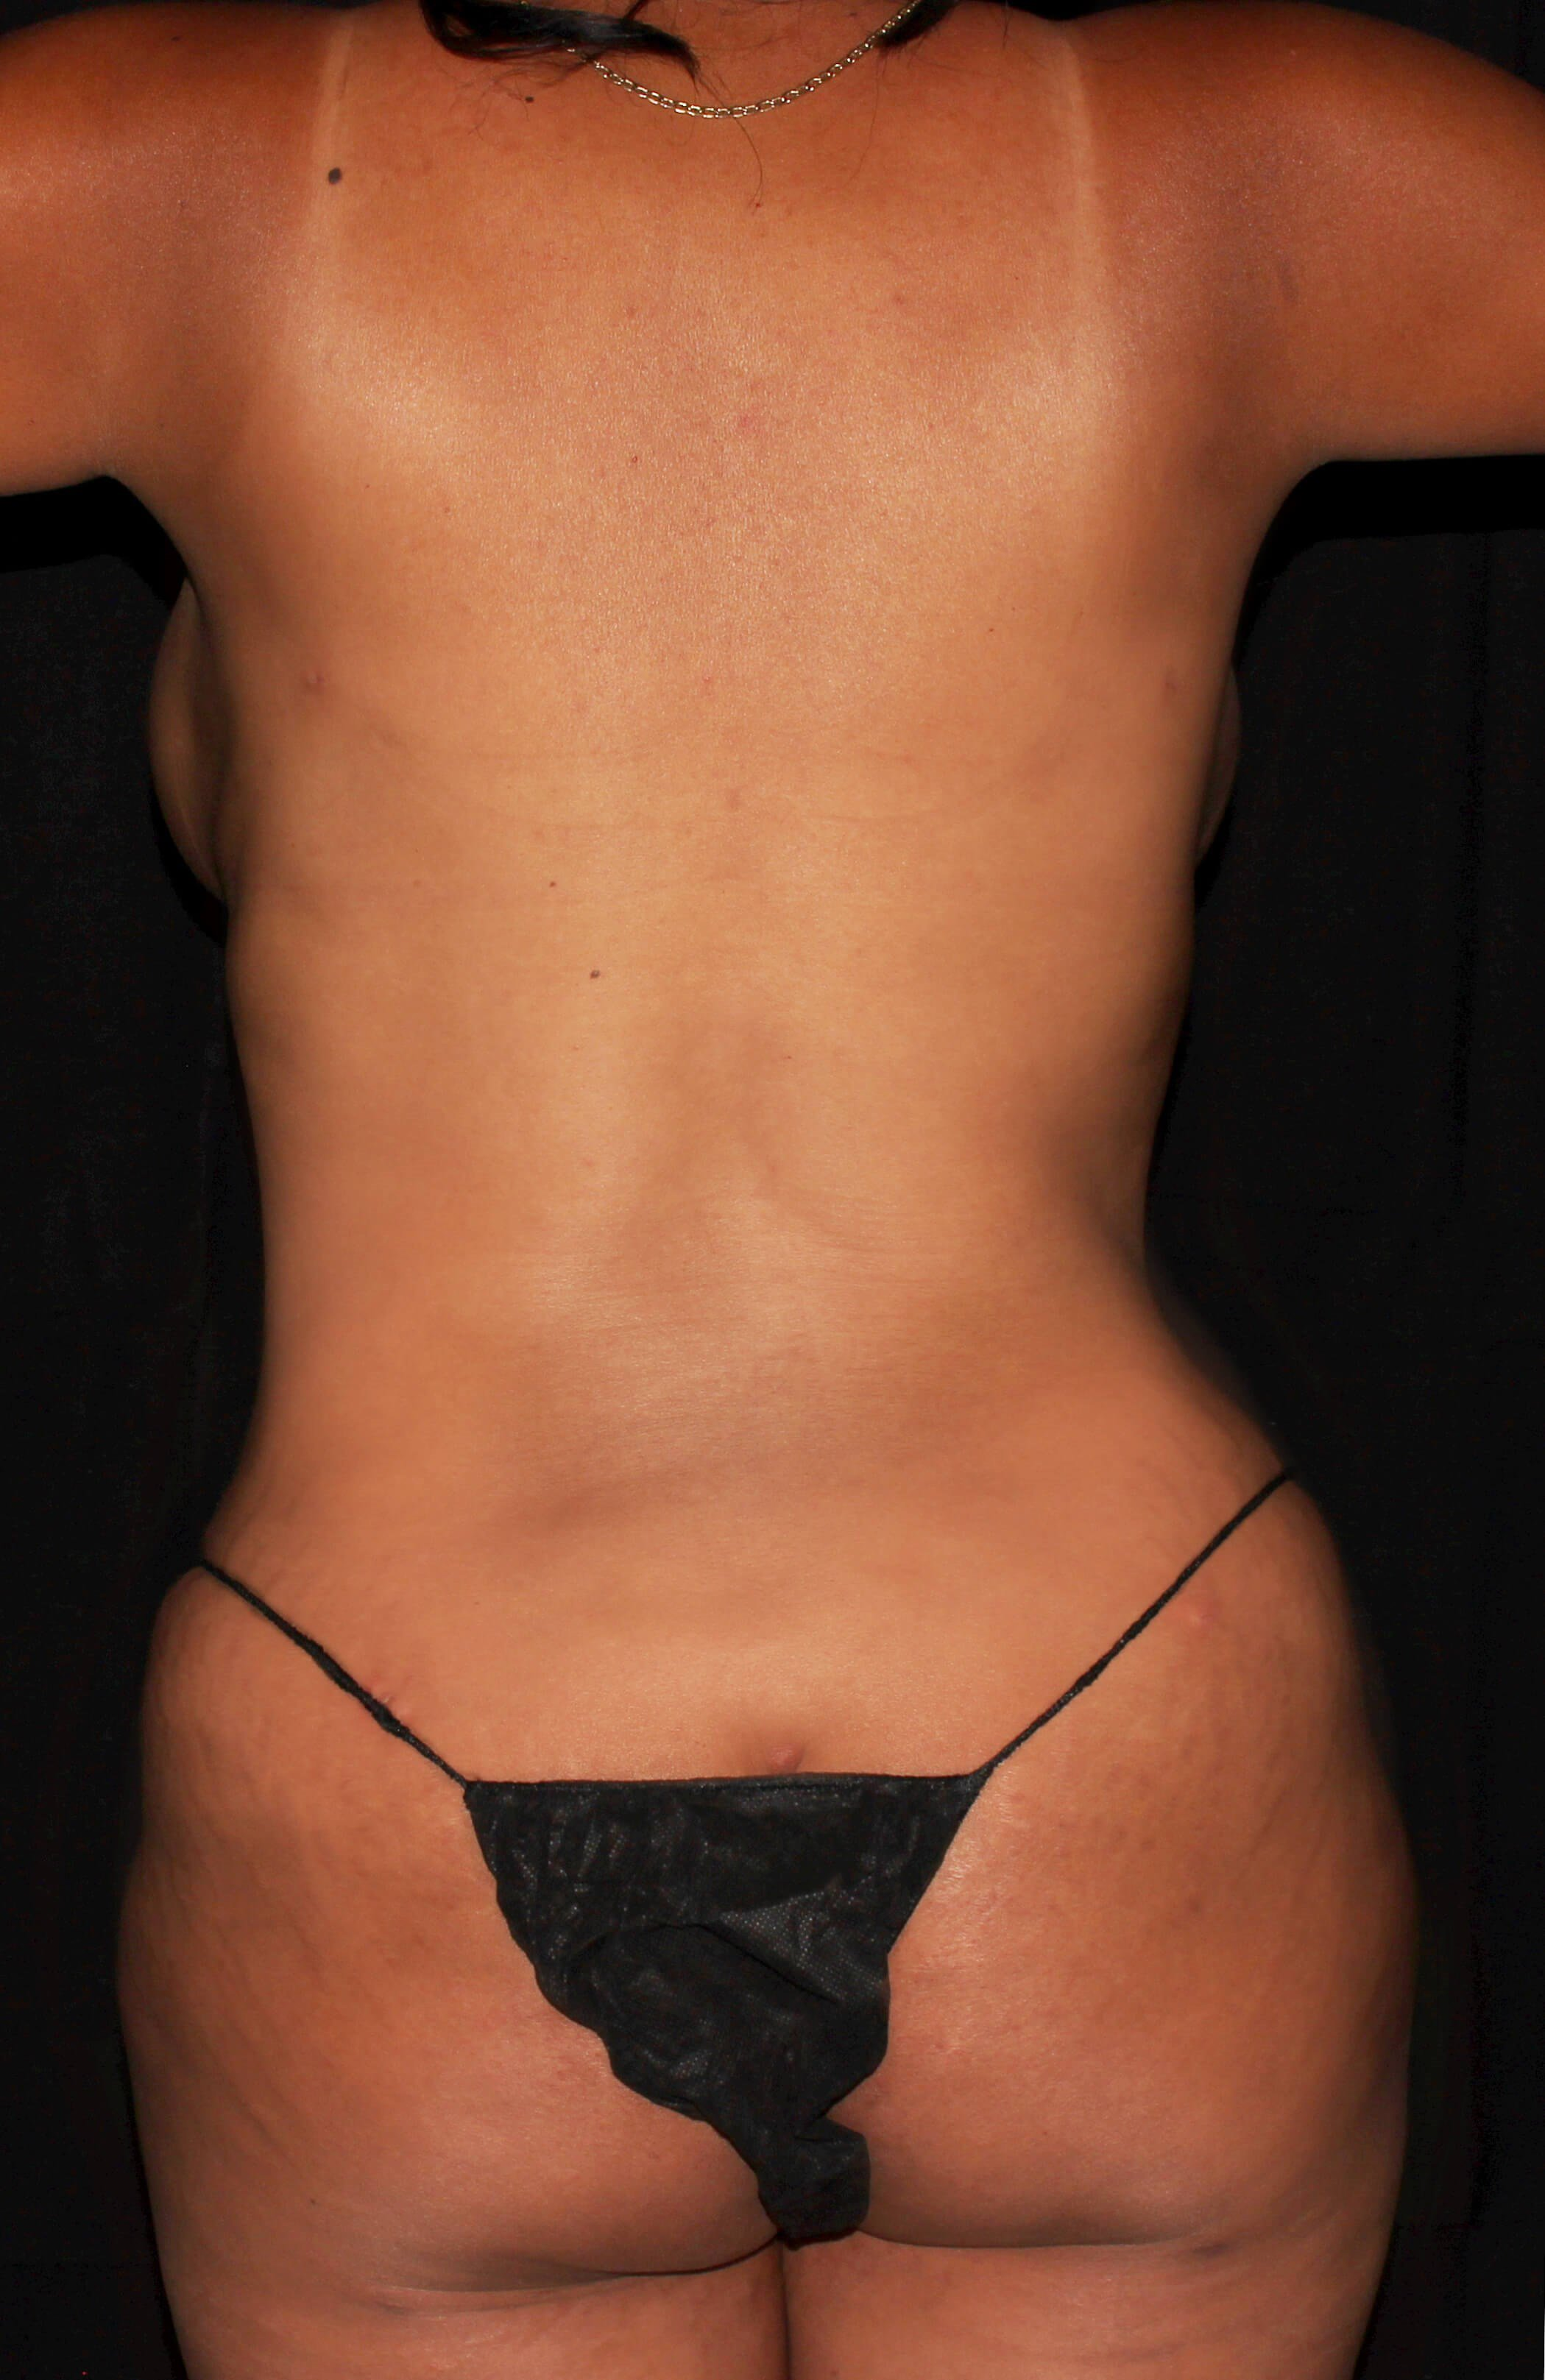 Breast Augmentation and Mommy Makeover After - Back View